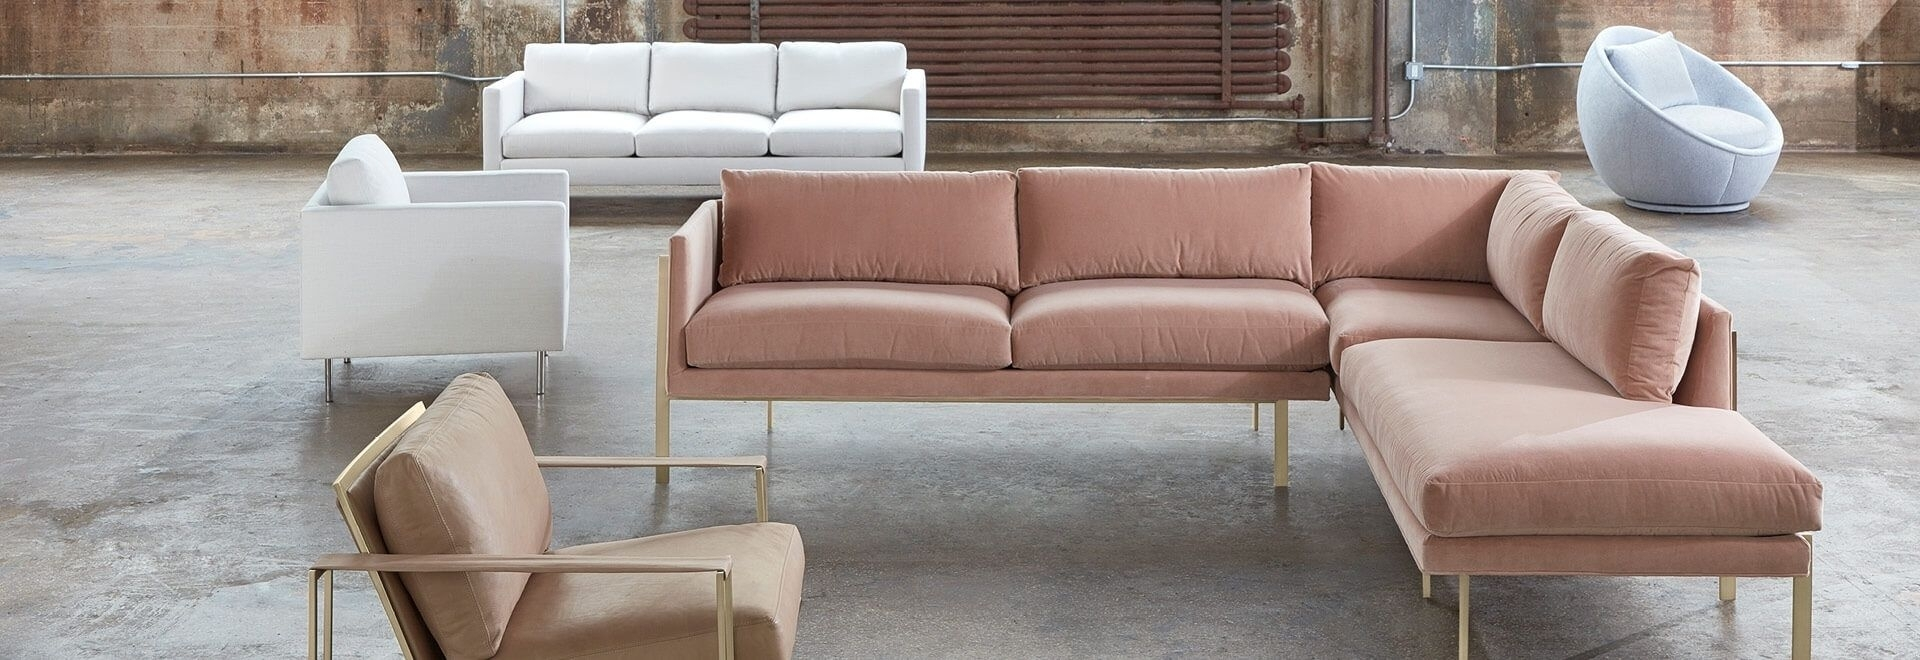 Modern Sectional Sofas For Apartments At Abc Home & Carpet in Harper Down 3 Piece Sectionals (Image 19 of 30)